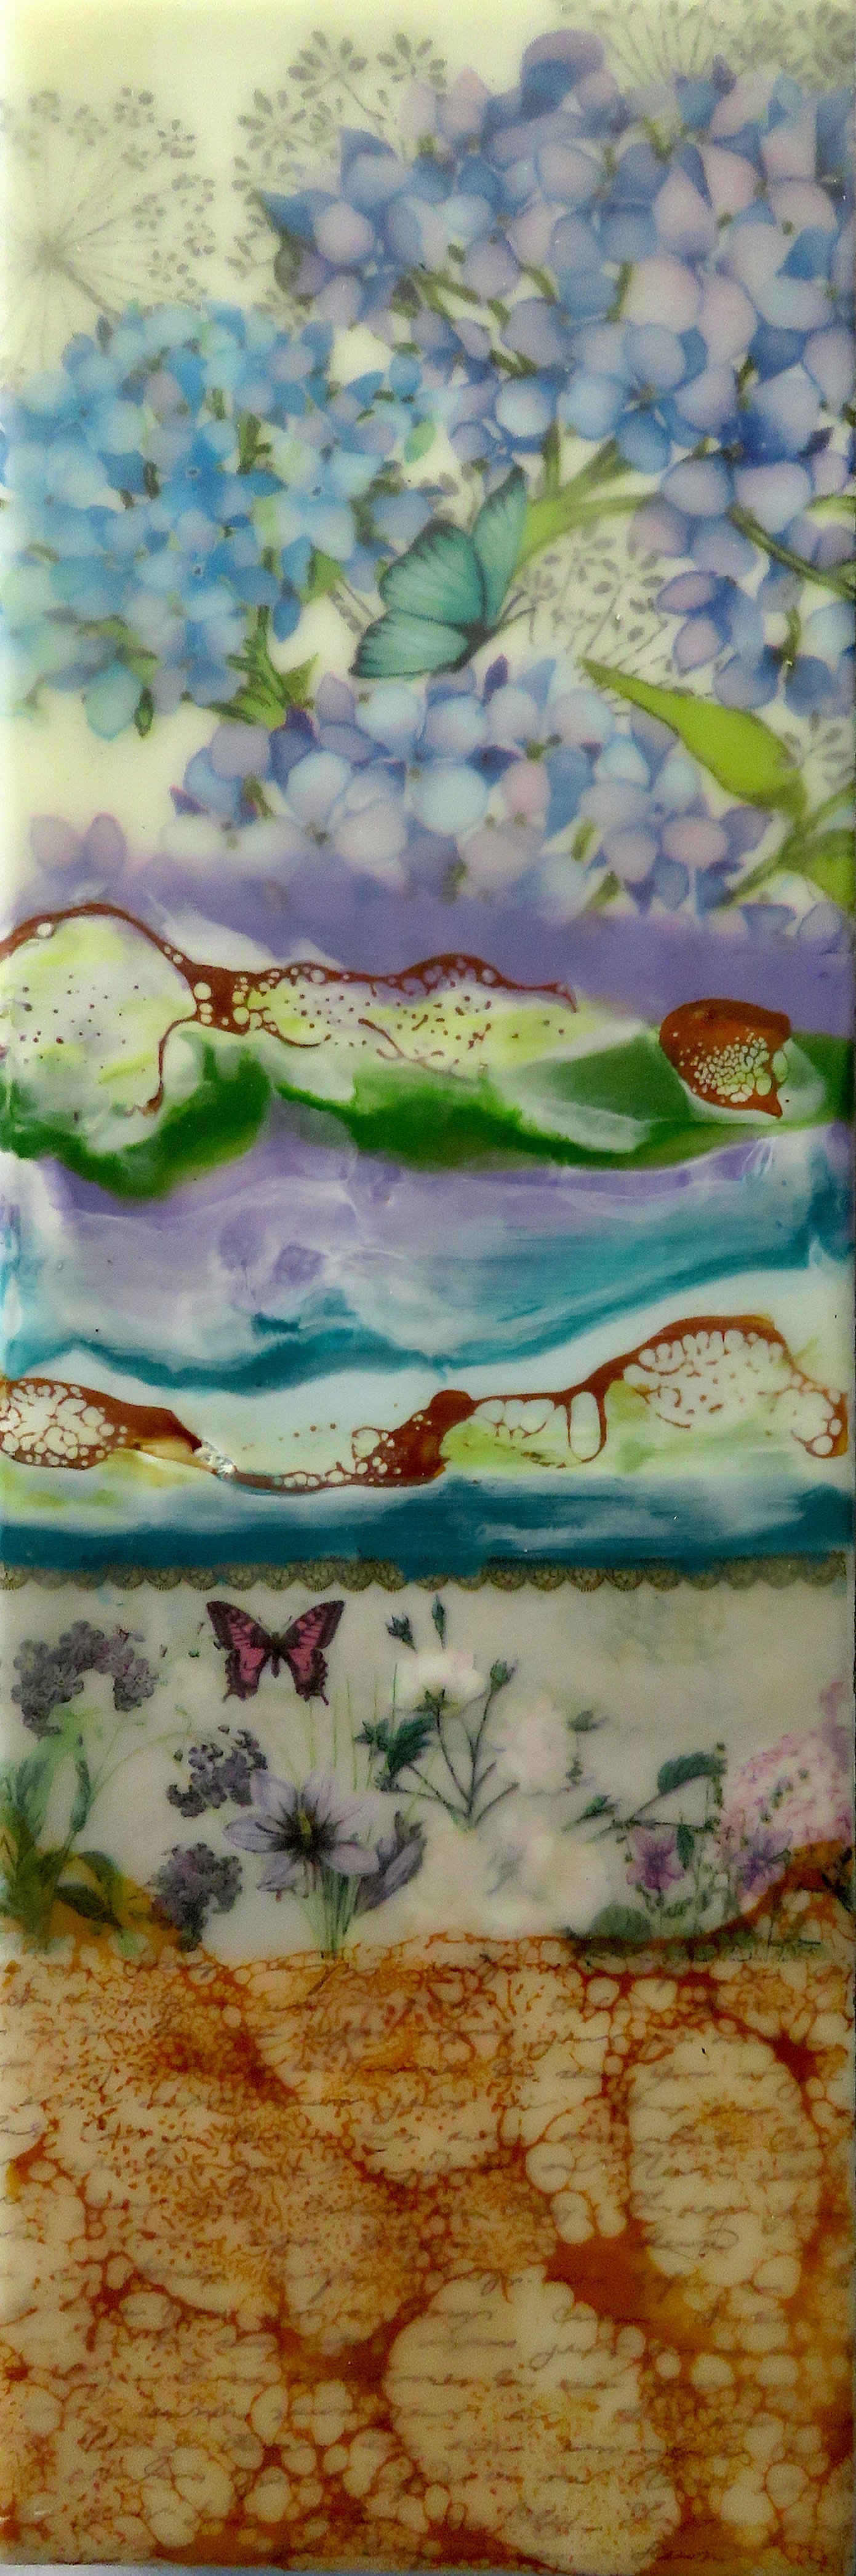 Encaustic Life In The Garden #153 | $295.00 |  300mm x 100mm